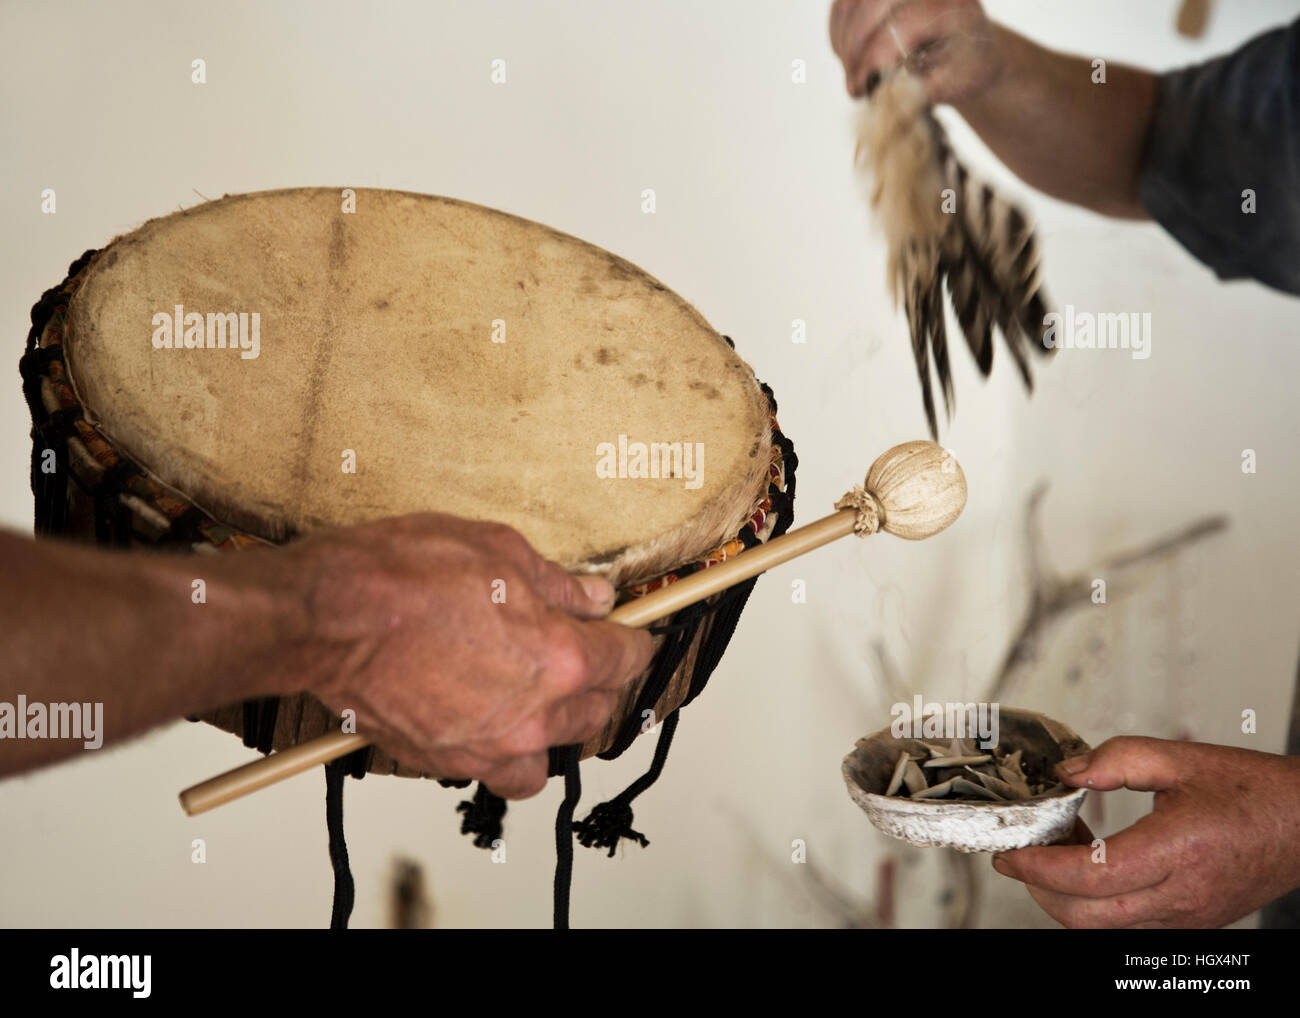 Shamanic smudge ceremony with sage, feathers and drum. Close up of hands holding the attributes. - Stock Image